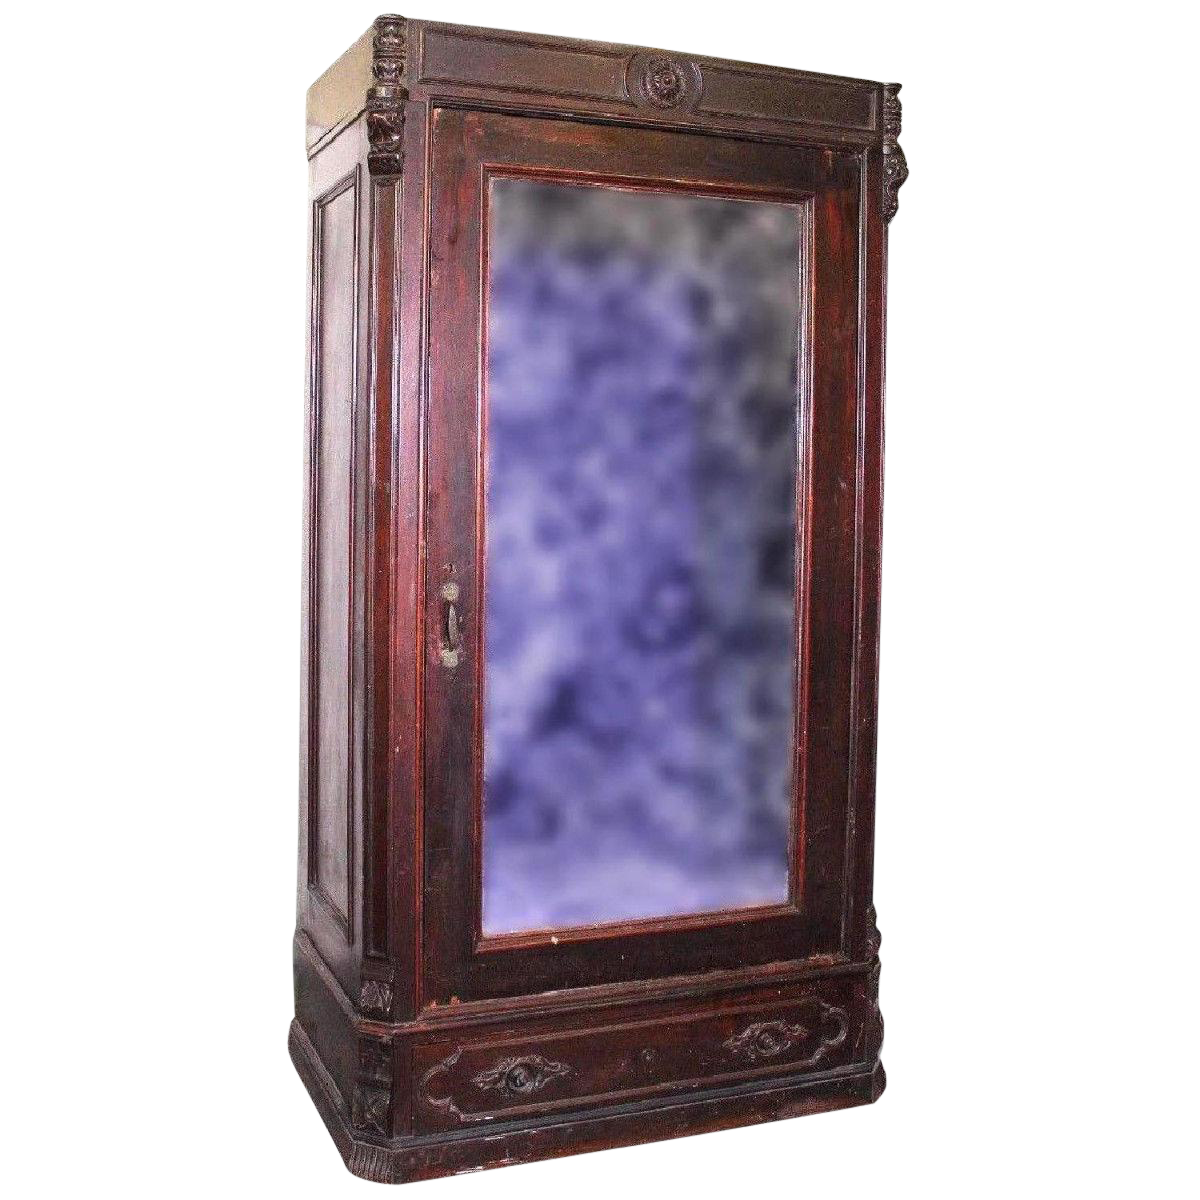 1750 Louis XVI Early 18th Century Antique Armoire Wardrobe Cabinet Chest